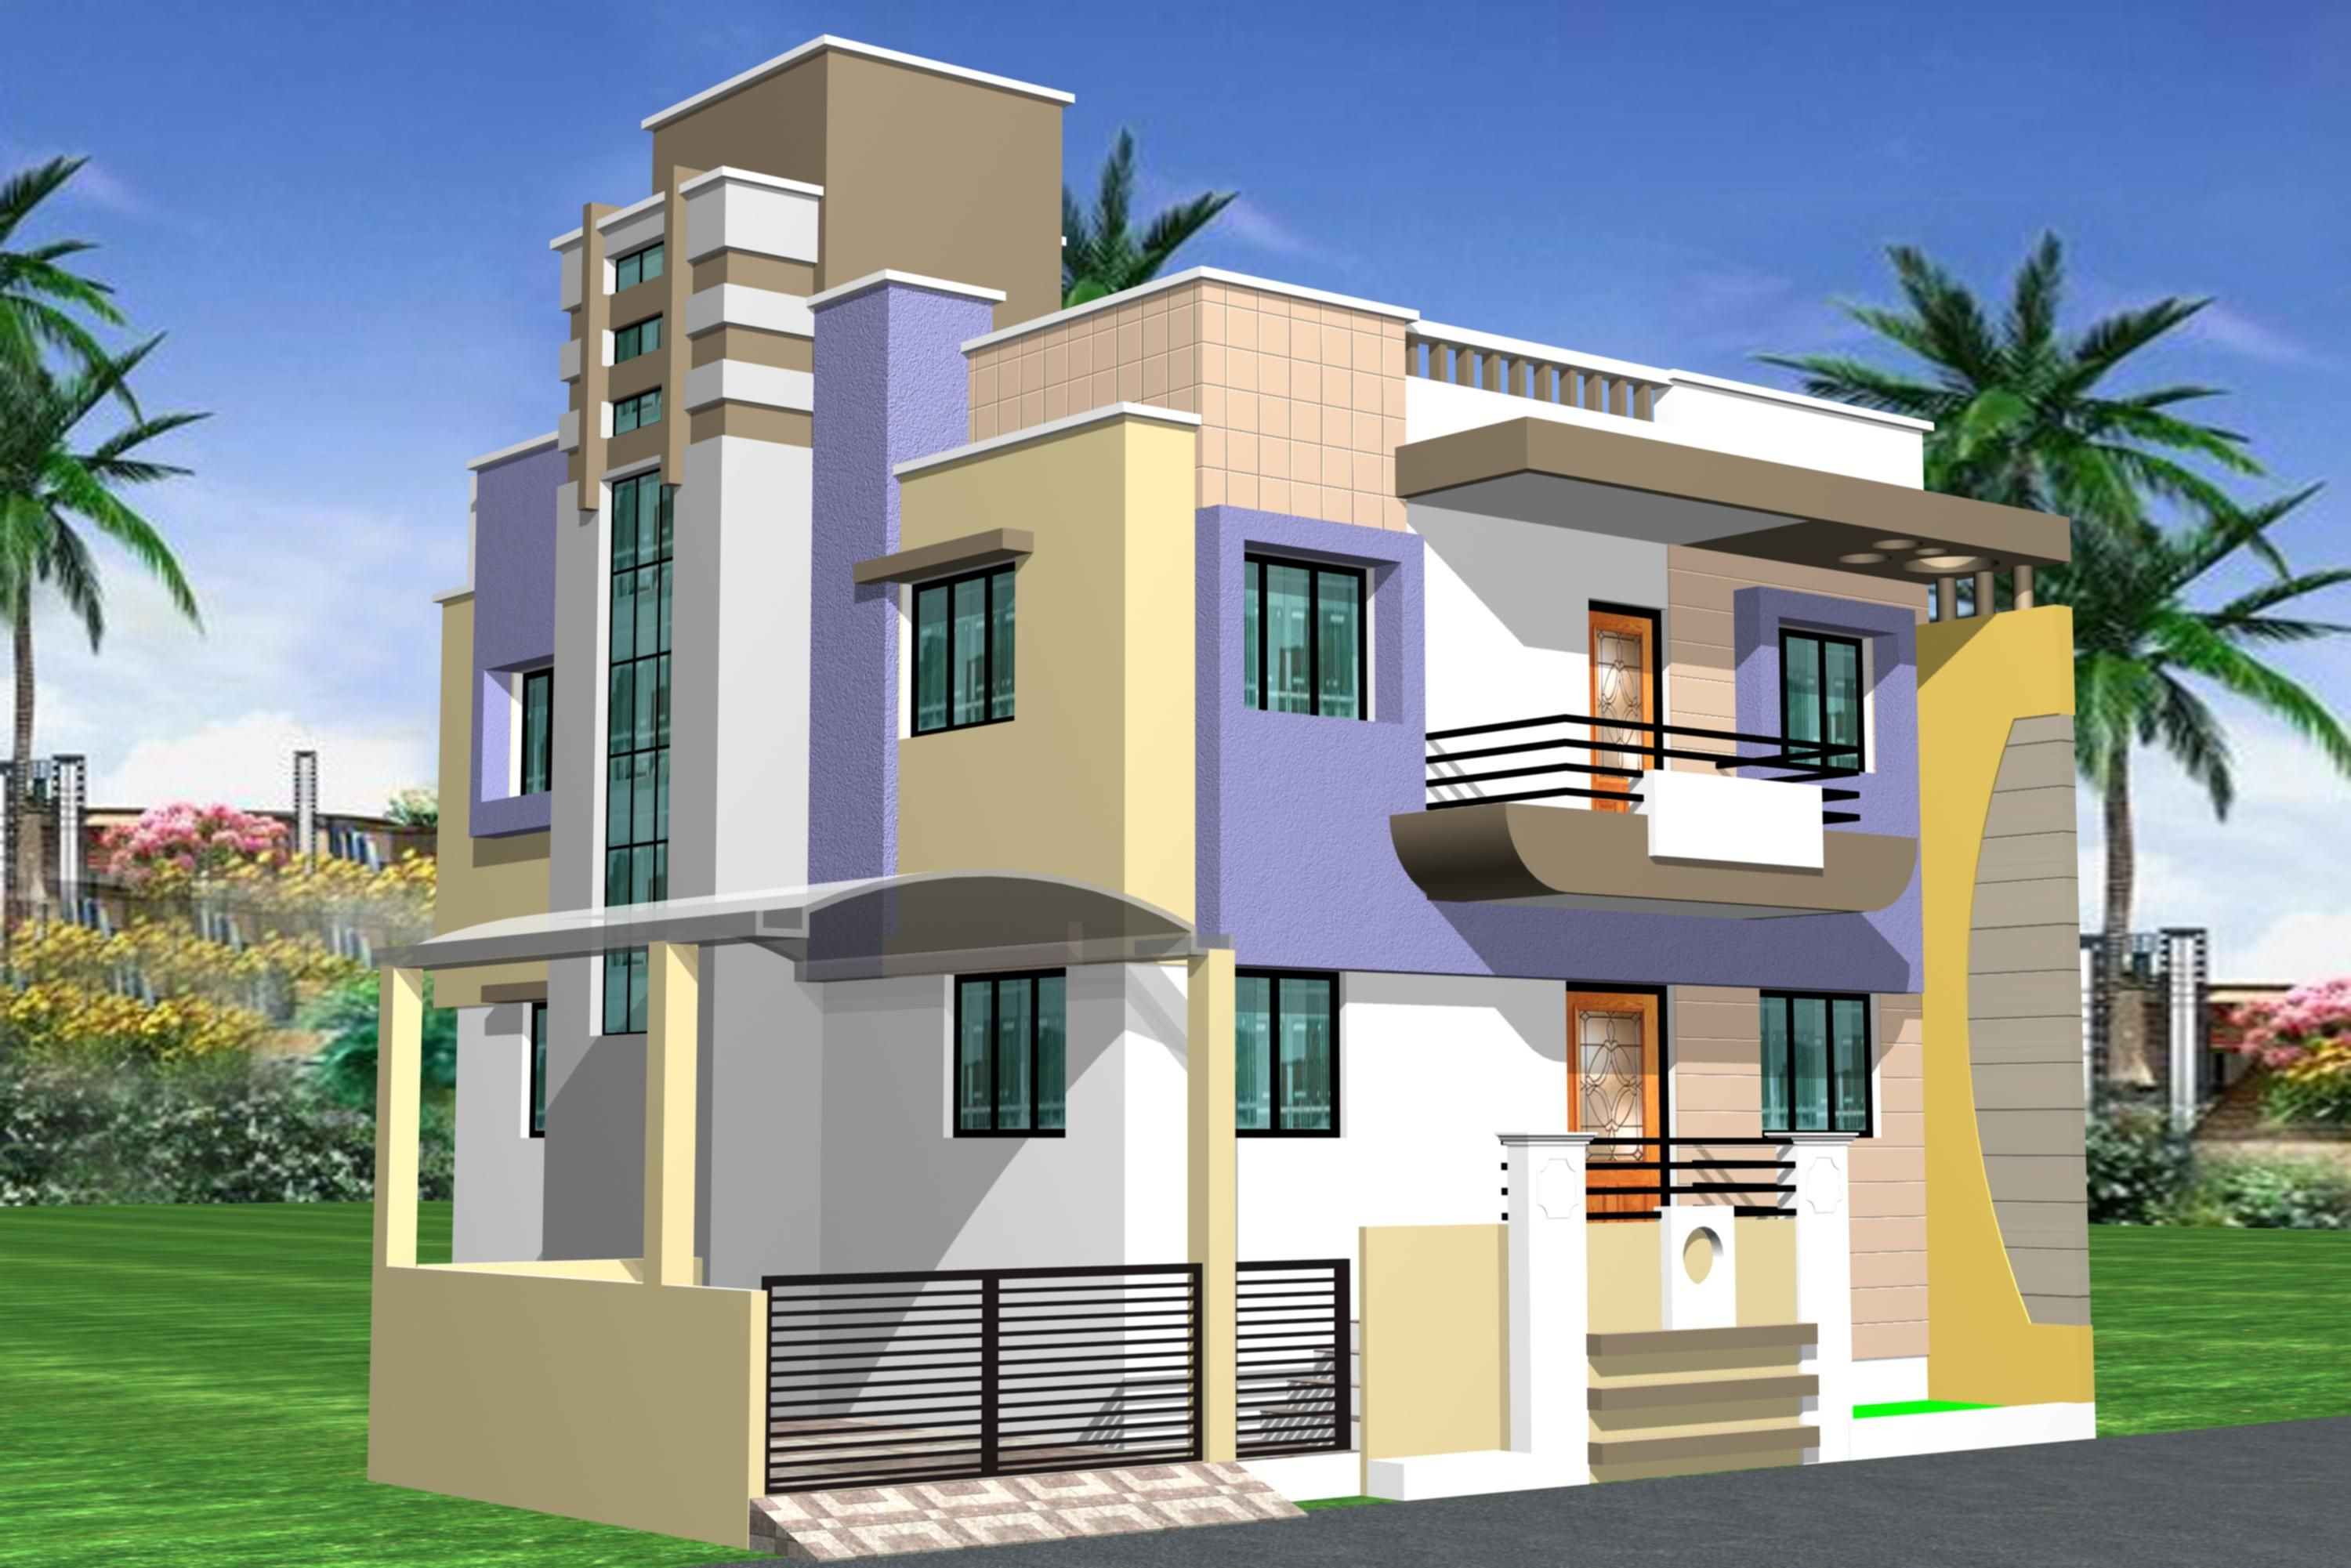 New Model Of House Design Simple House Model In Tamilnadu  House Plans And Ideas .